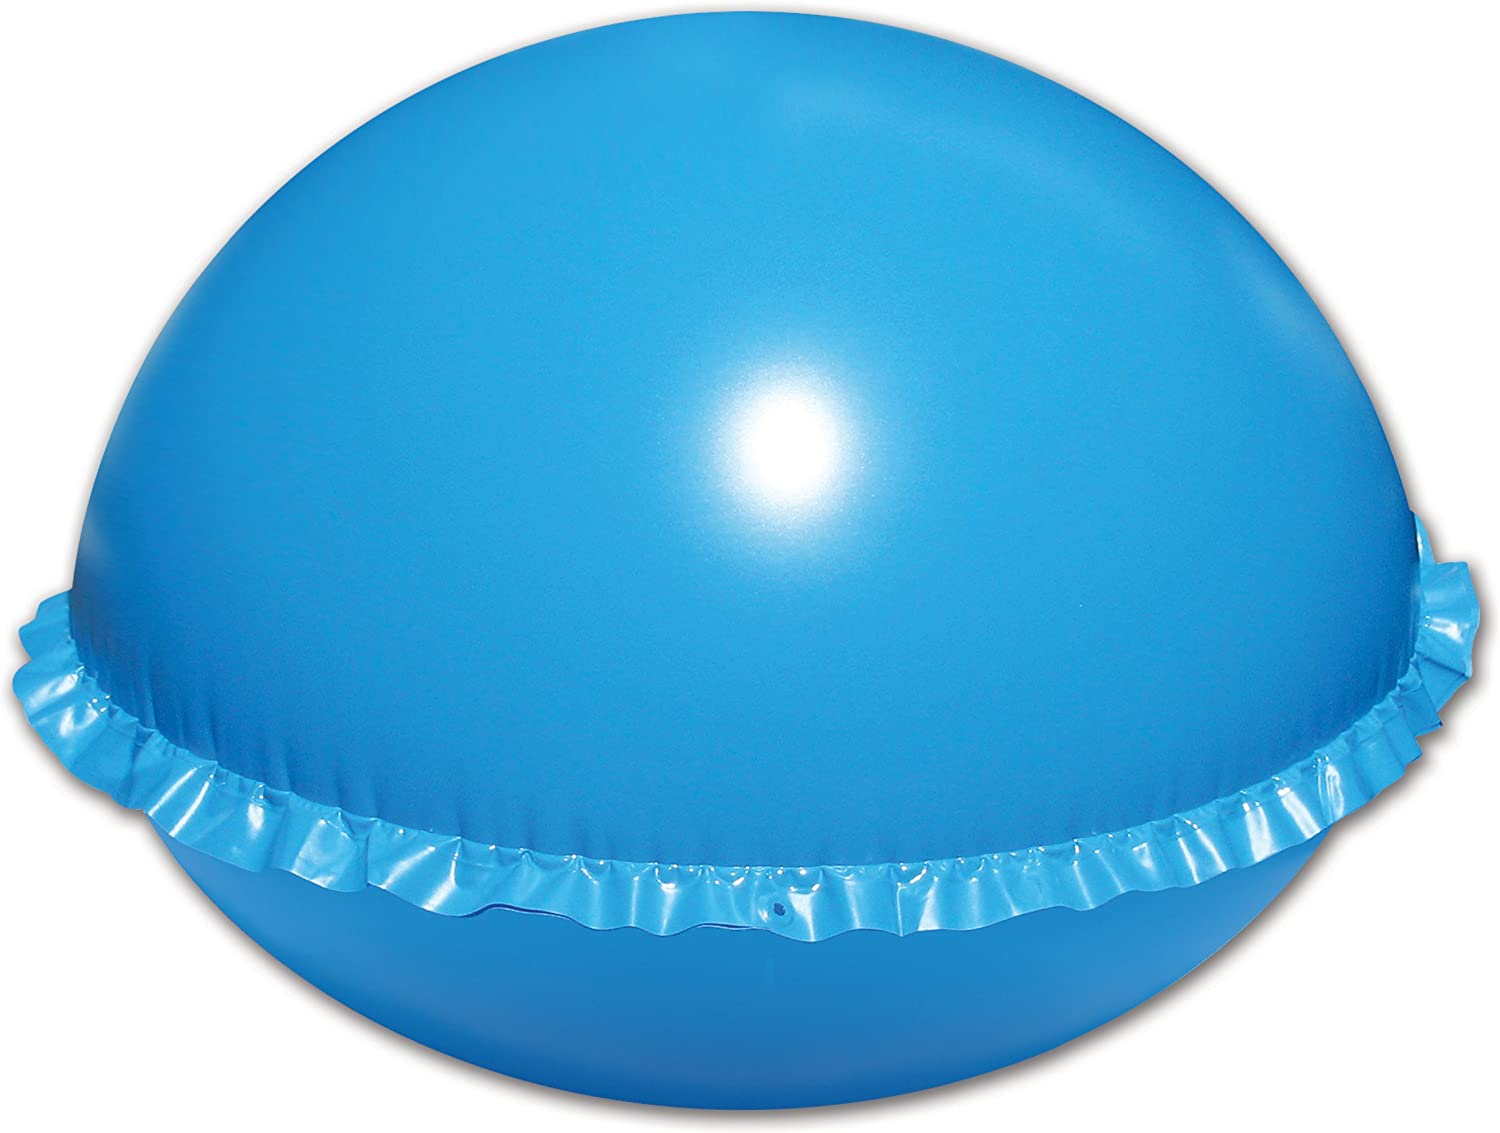 In The Swim Air Pillows Winter Pool Cover 4 feet : Swimming Pool Covers : Garden & Outdoor